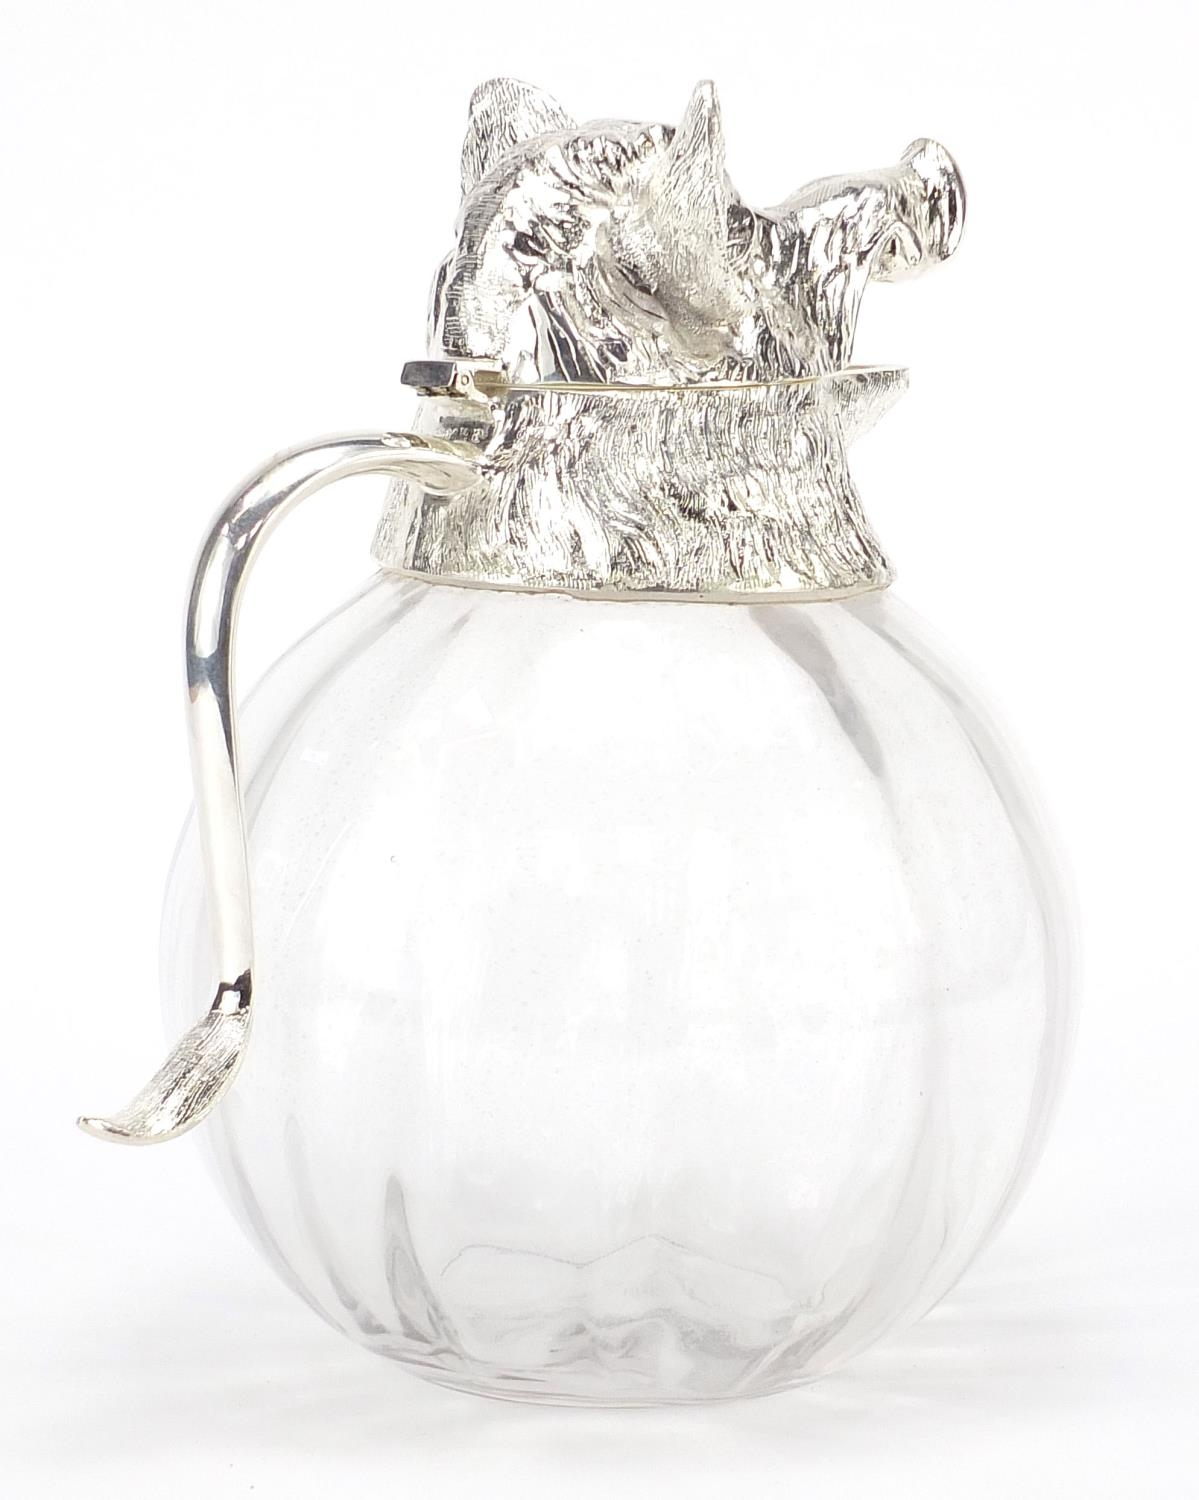 Manner of Valenti, globular glass carafe with silver plated mounts in the form of a boars head, 28cm - Image 6 of 10